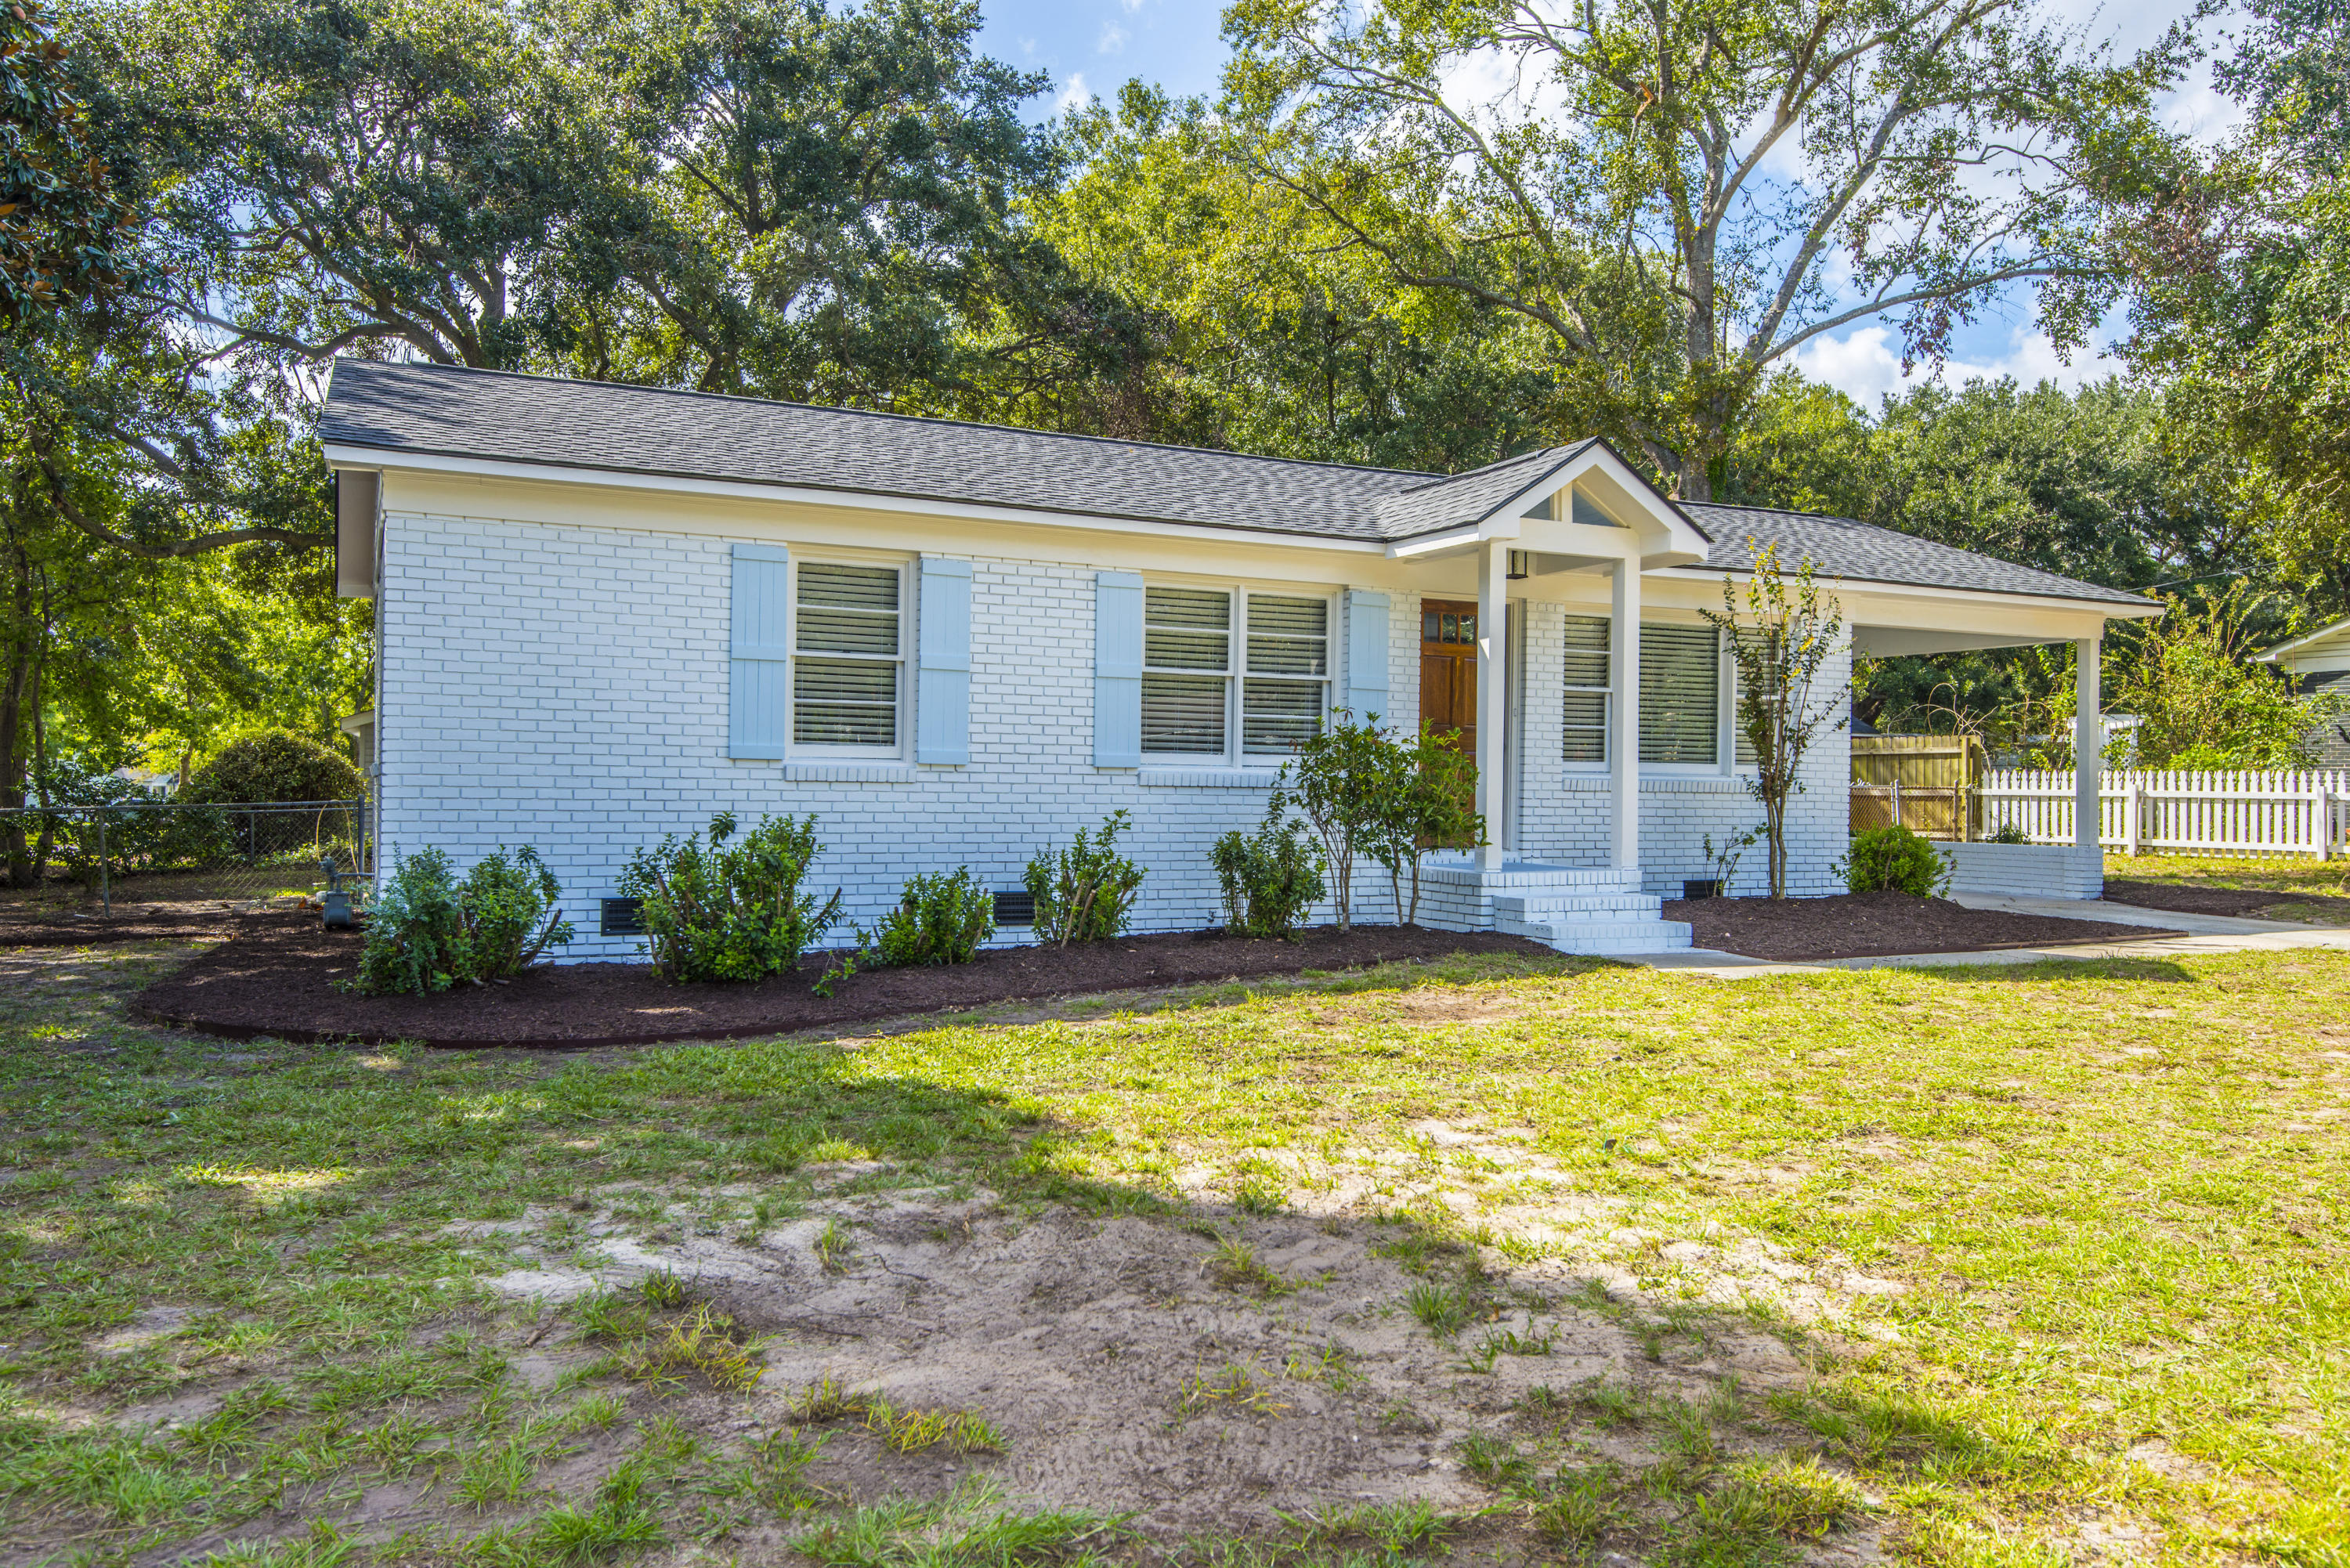 West Glow Homes For Sale - 1125 Crull, Charleston, SC - 0